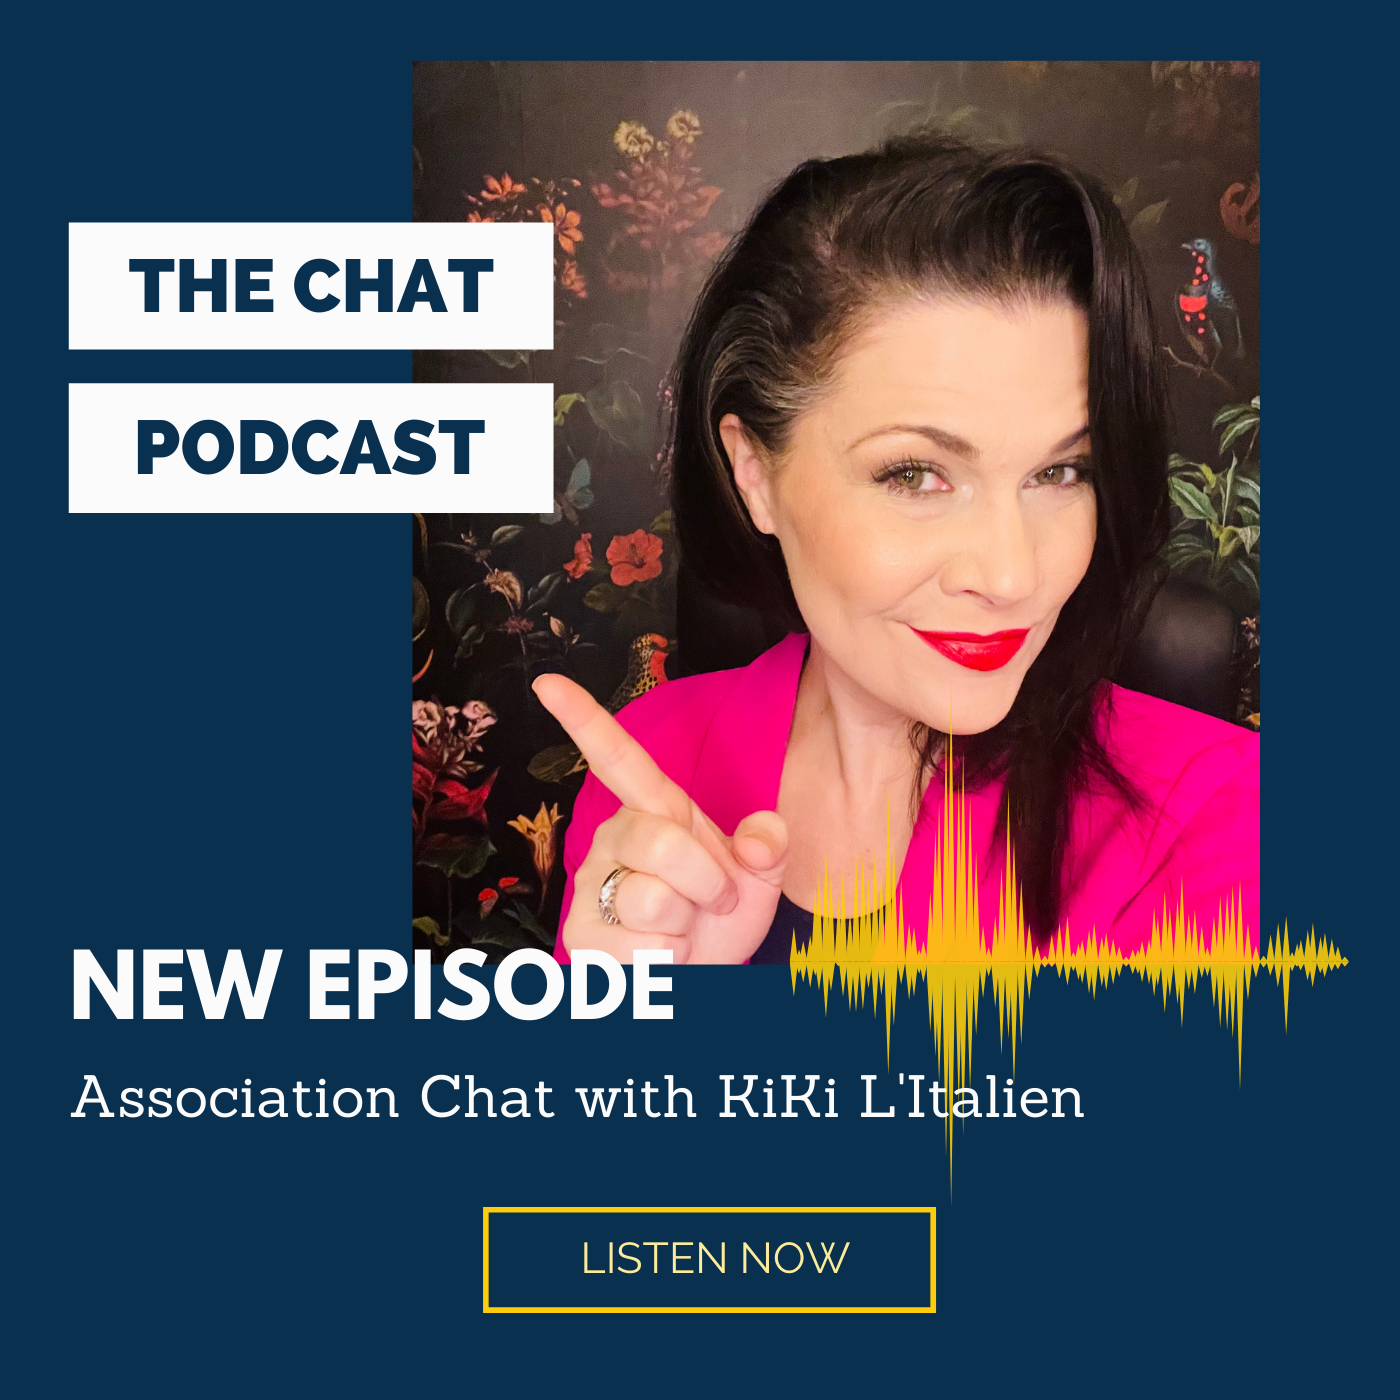 Association Chat Podcast: Association Chat News Flash Briefing: Week of October 1, 2018